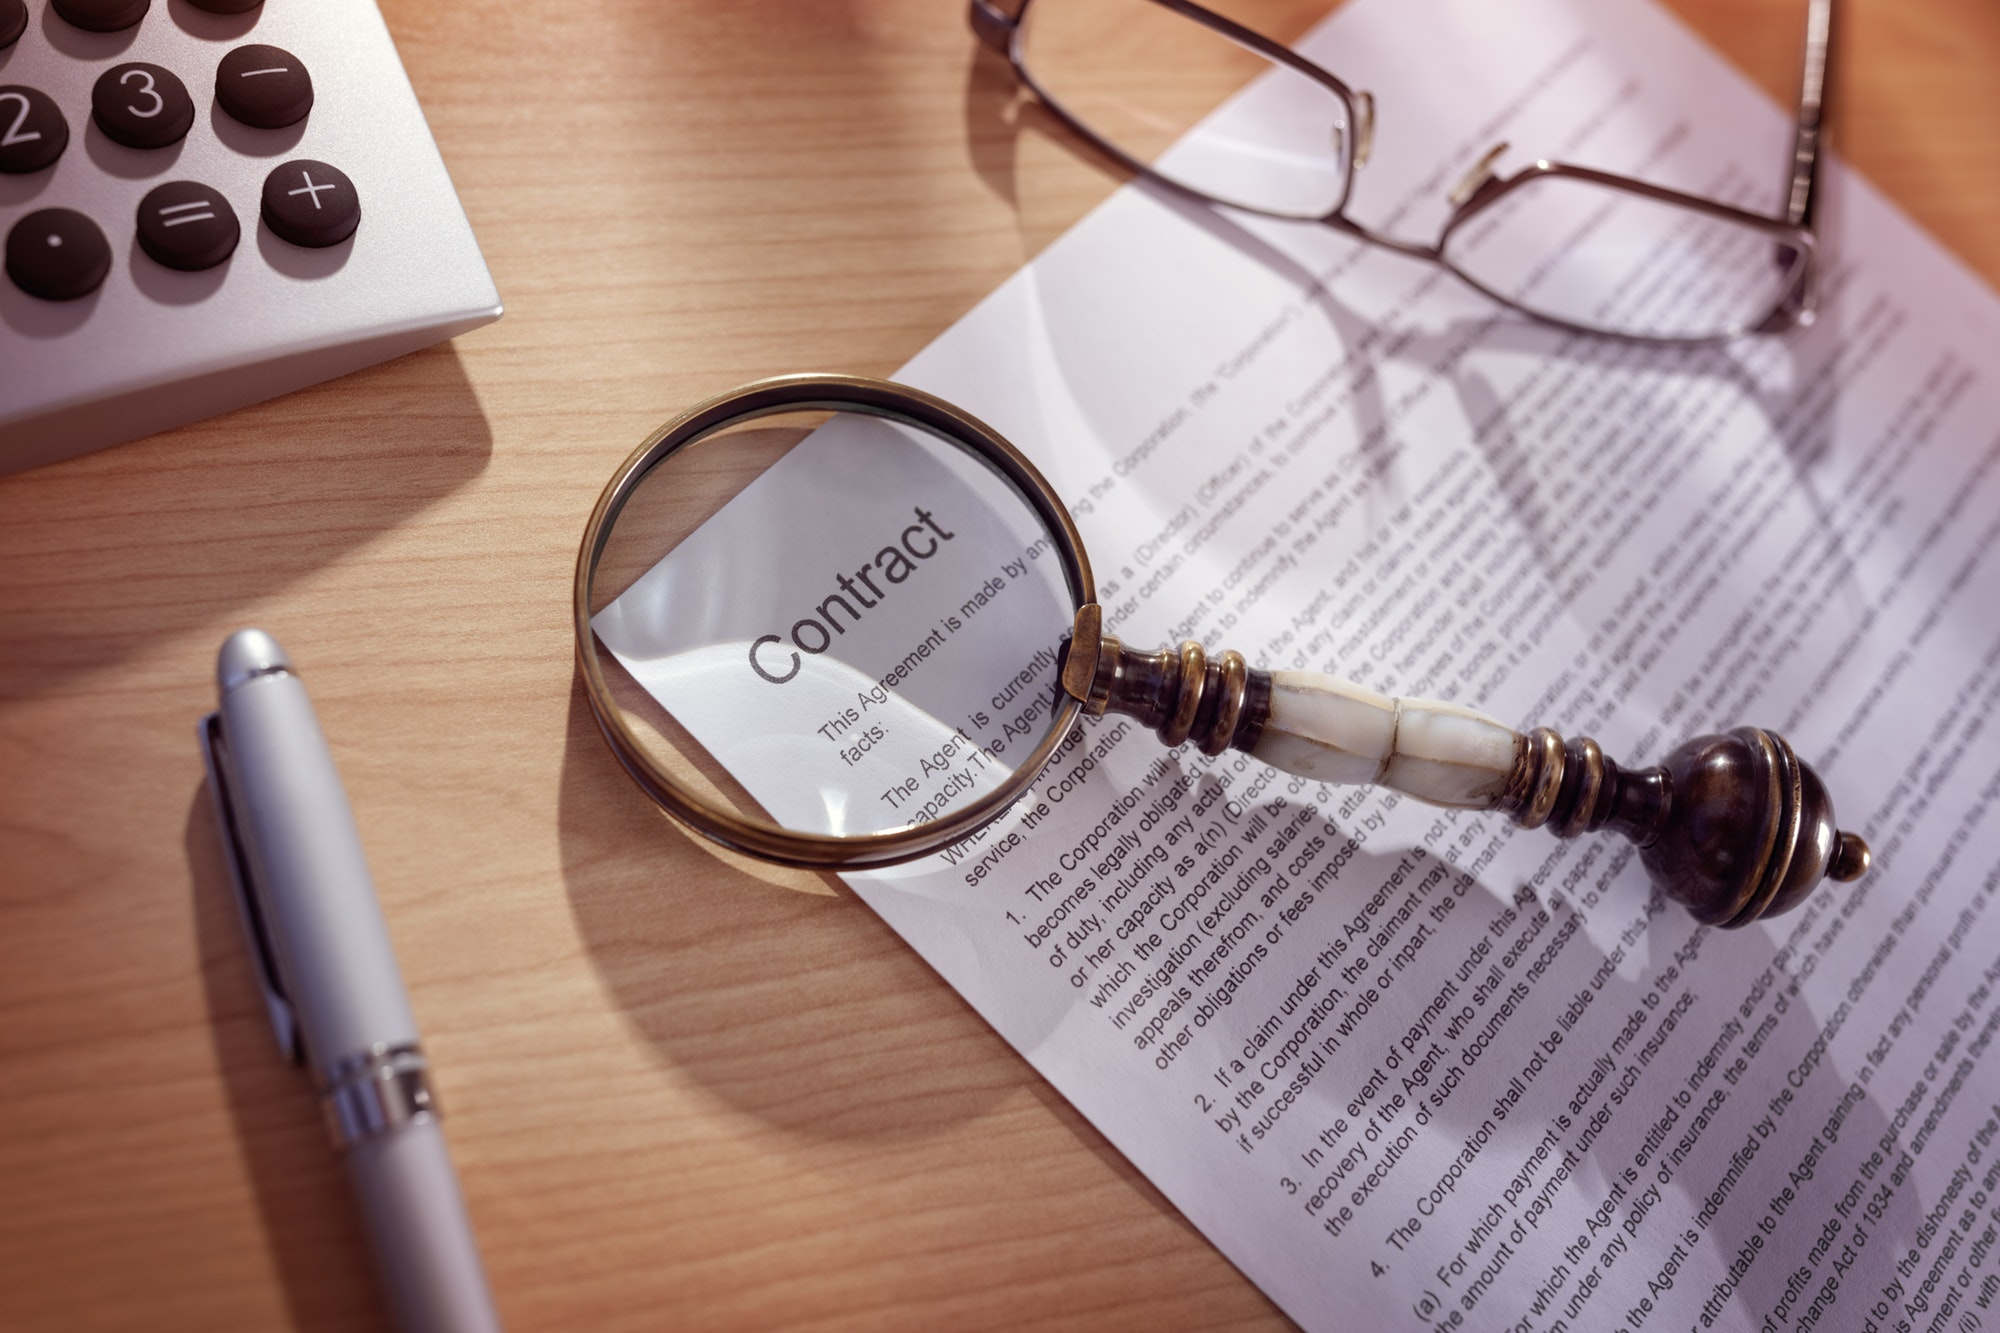 Magnifying glass on a legal breach of contract litigation attorney